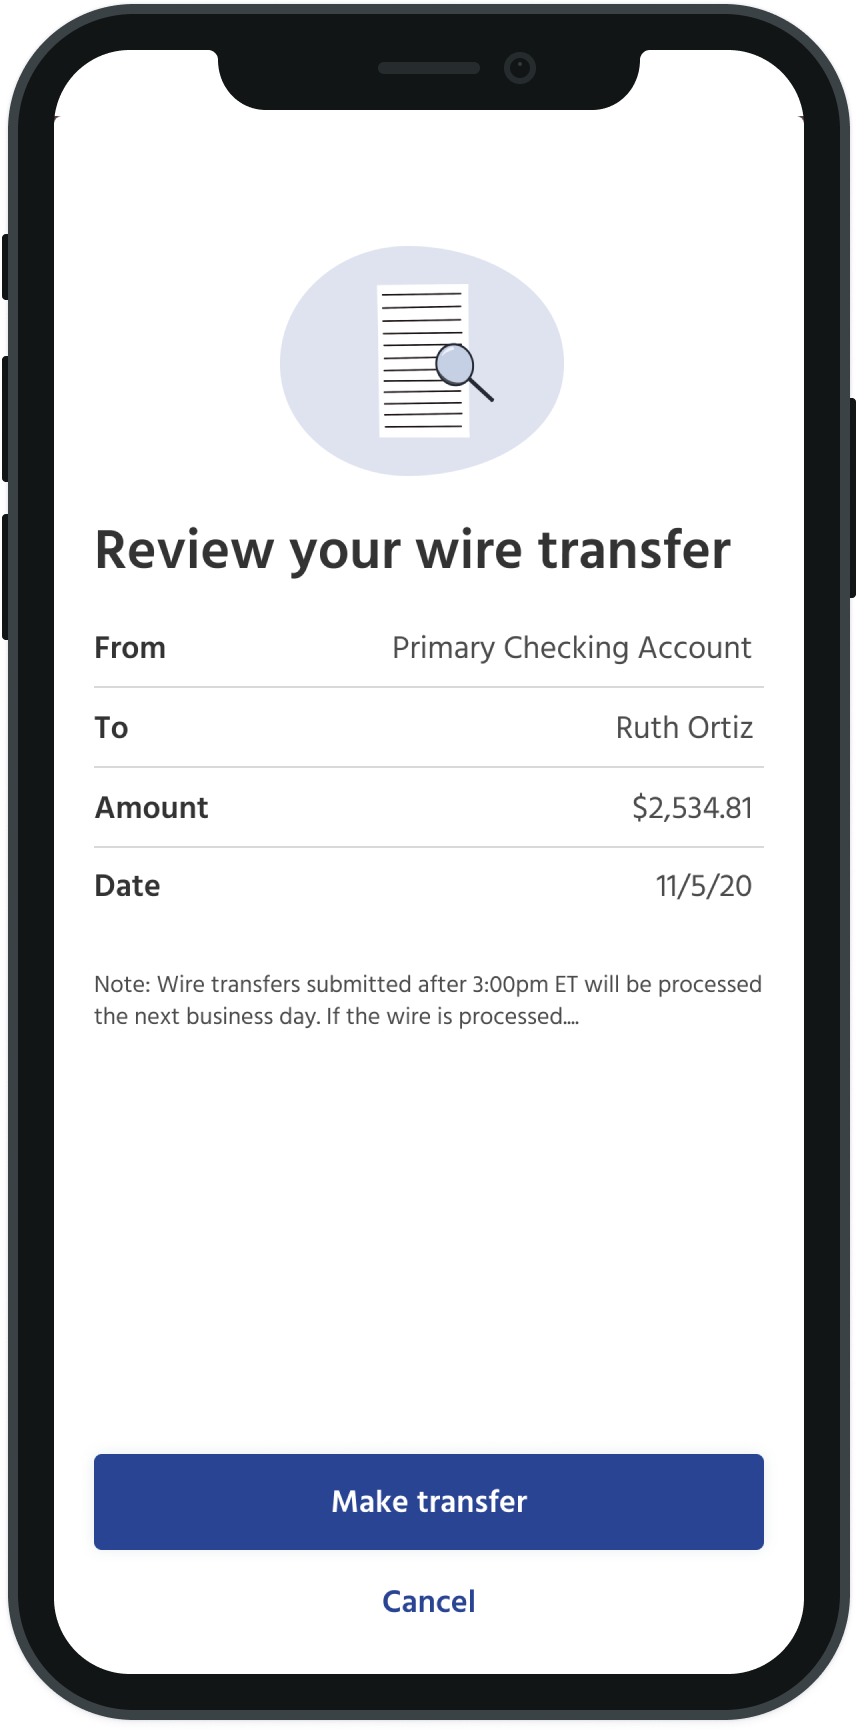 review wire transfer screen